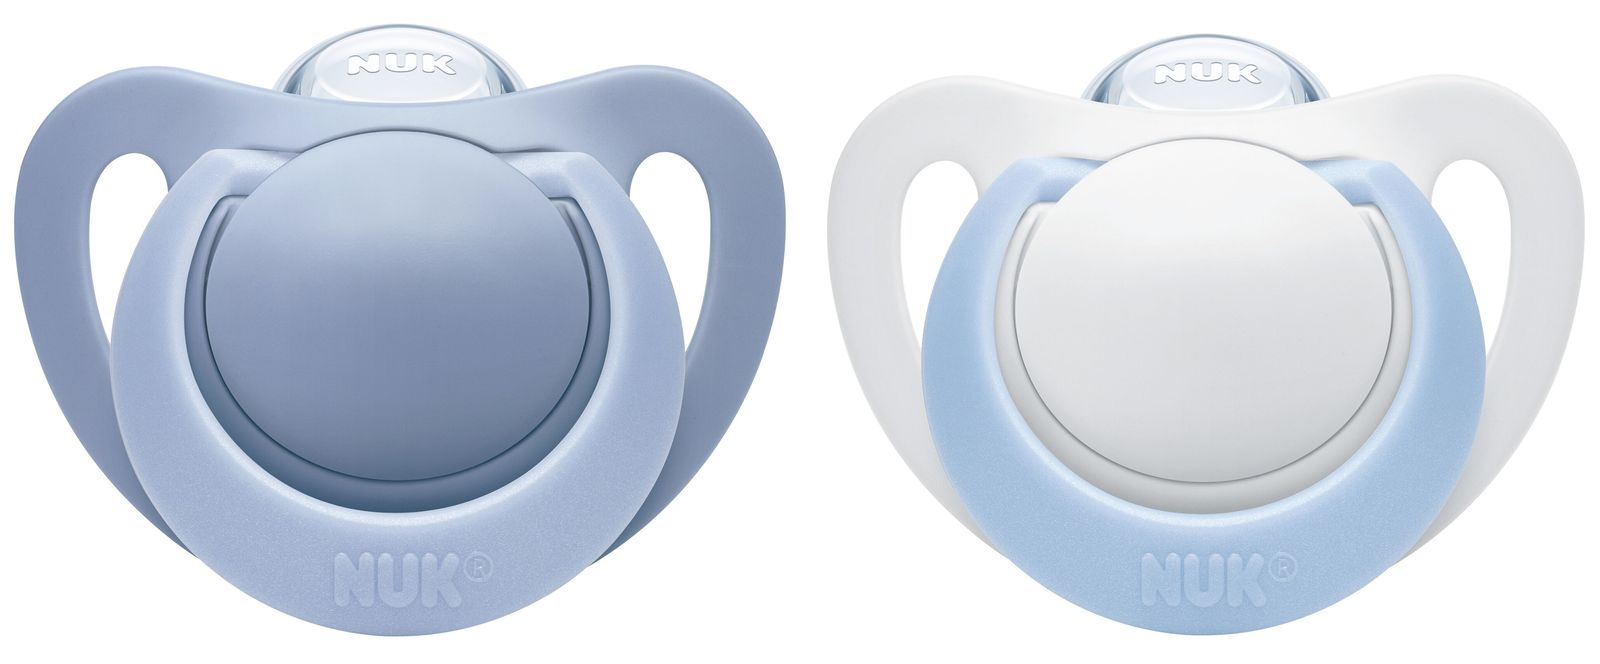 NUK: Genius Silicone Soother - 18-36 Months Blue (2 Pack) image